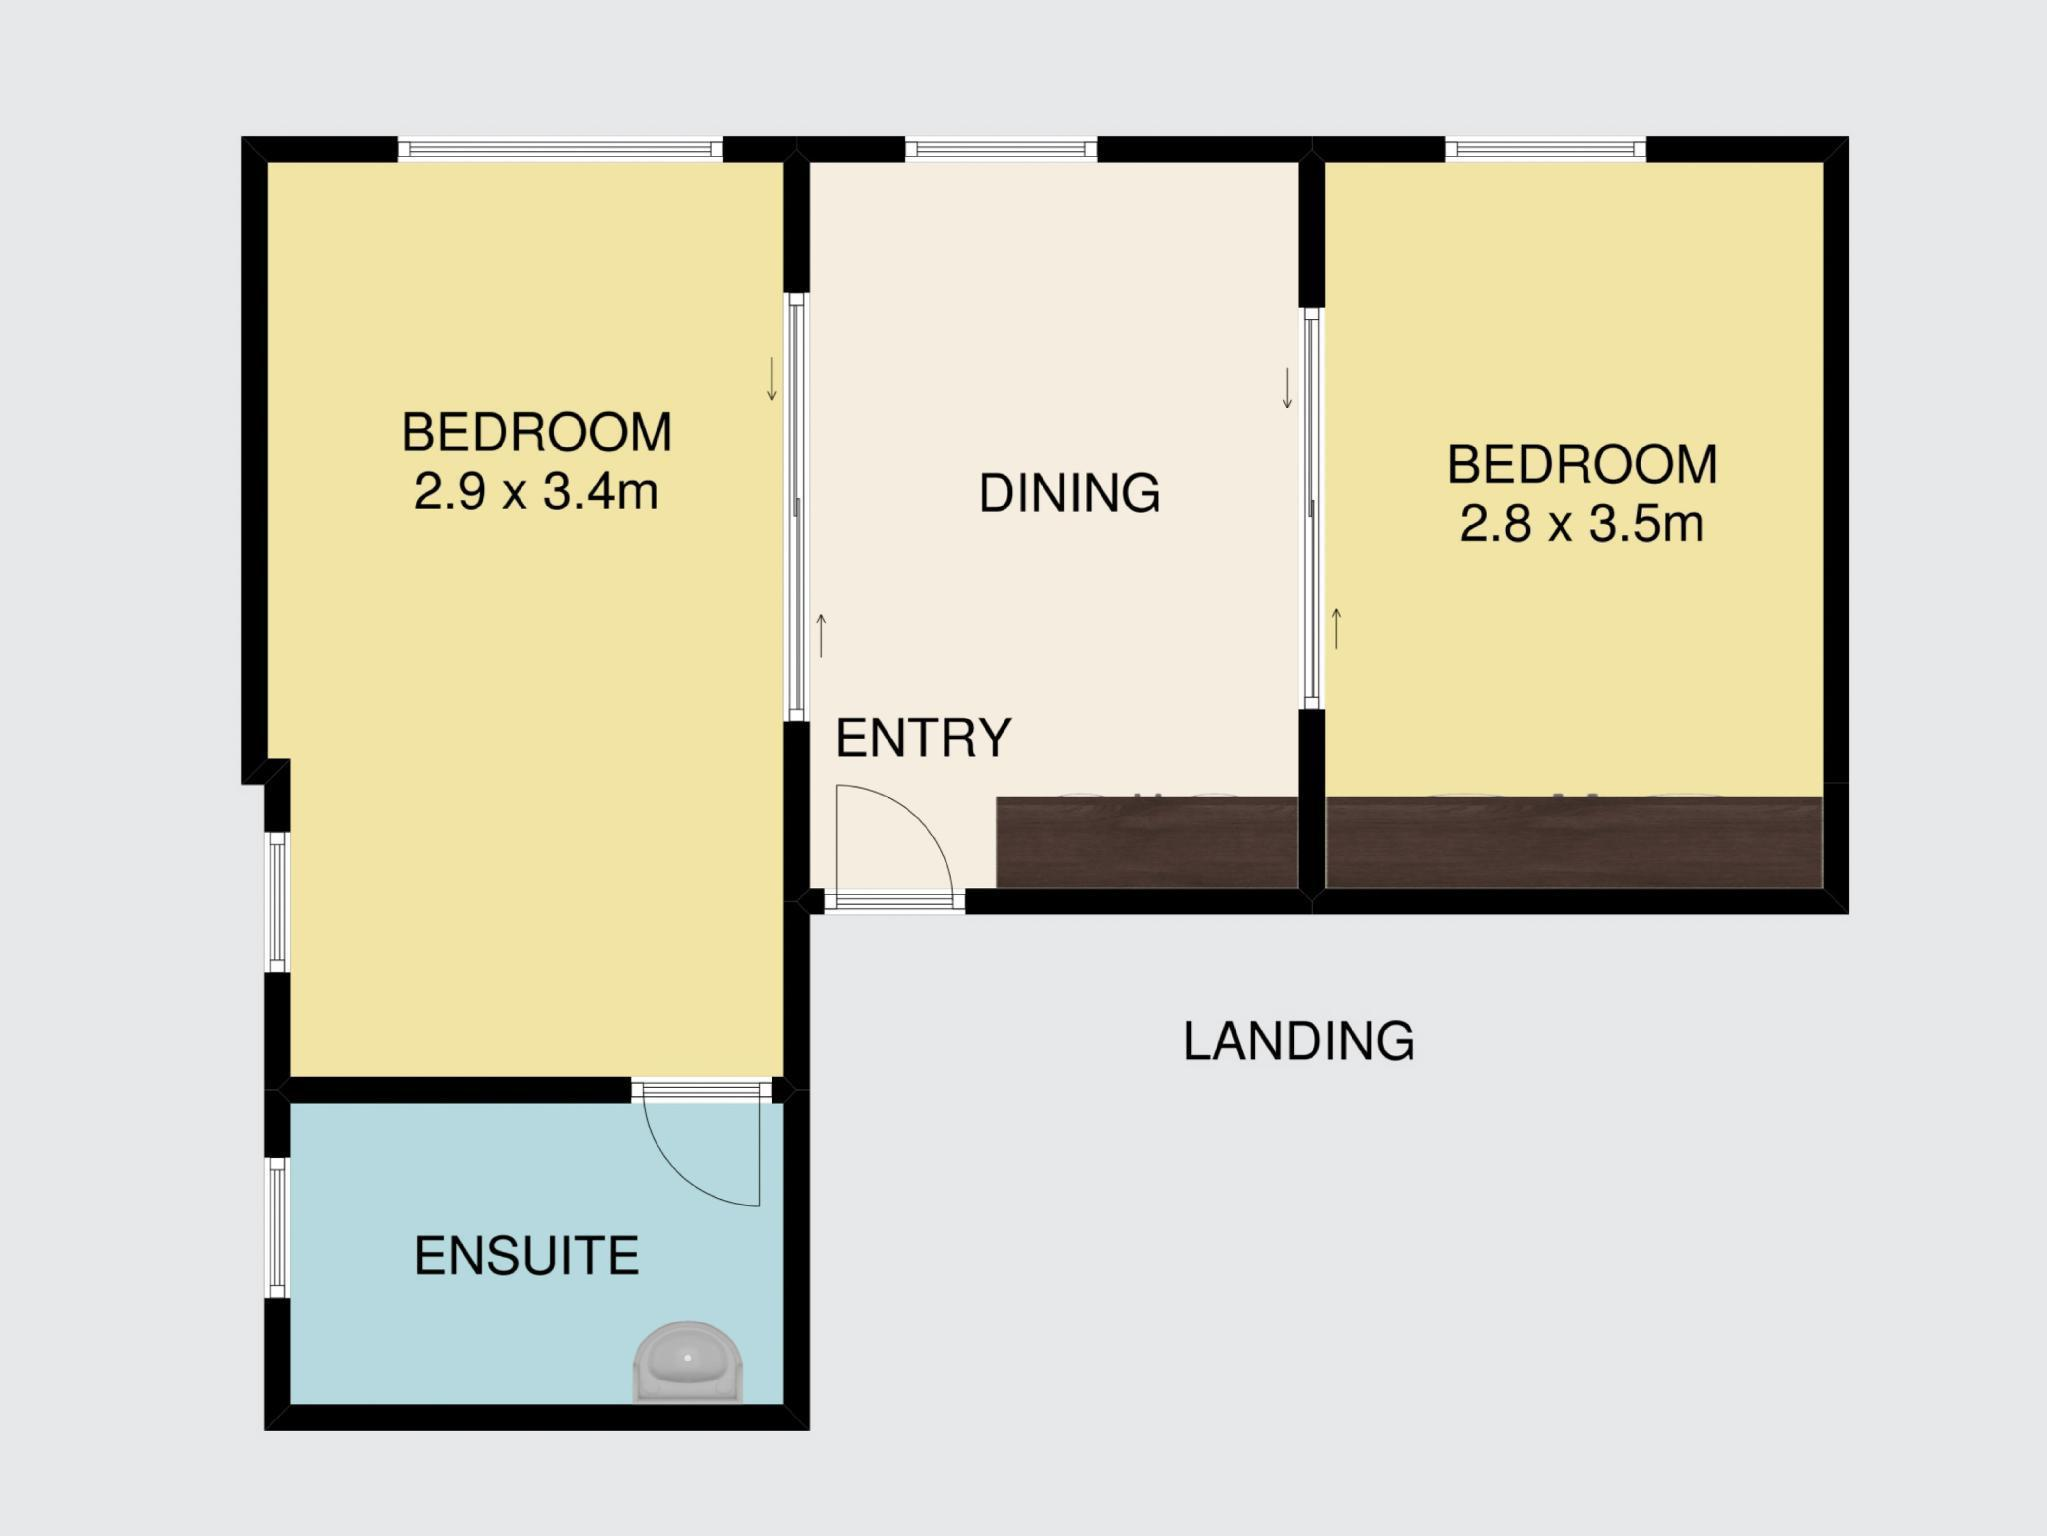 Thoonglor9-2Br.Private Homestay@Bts Thonglor-Wifi Thoonglor9-2Br.Private Homestay@Bts Thonglor-Wifi